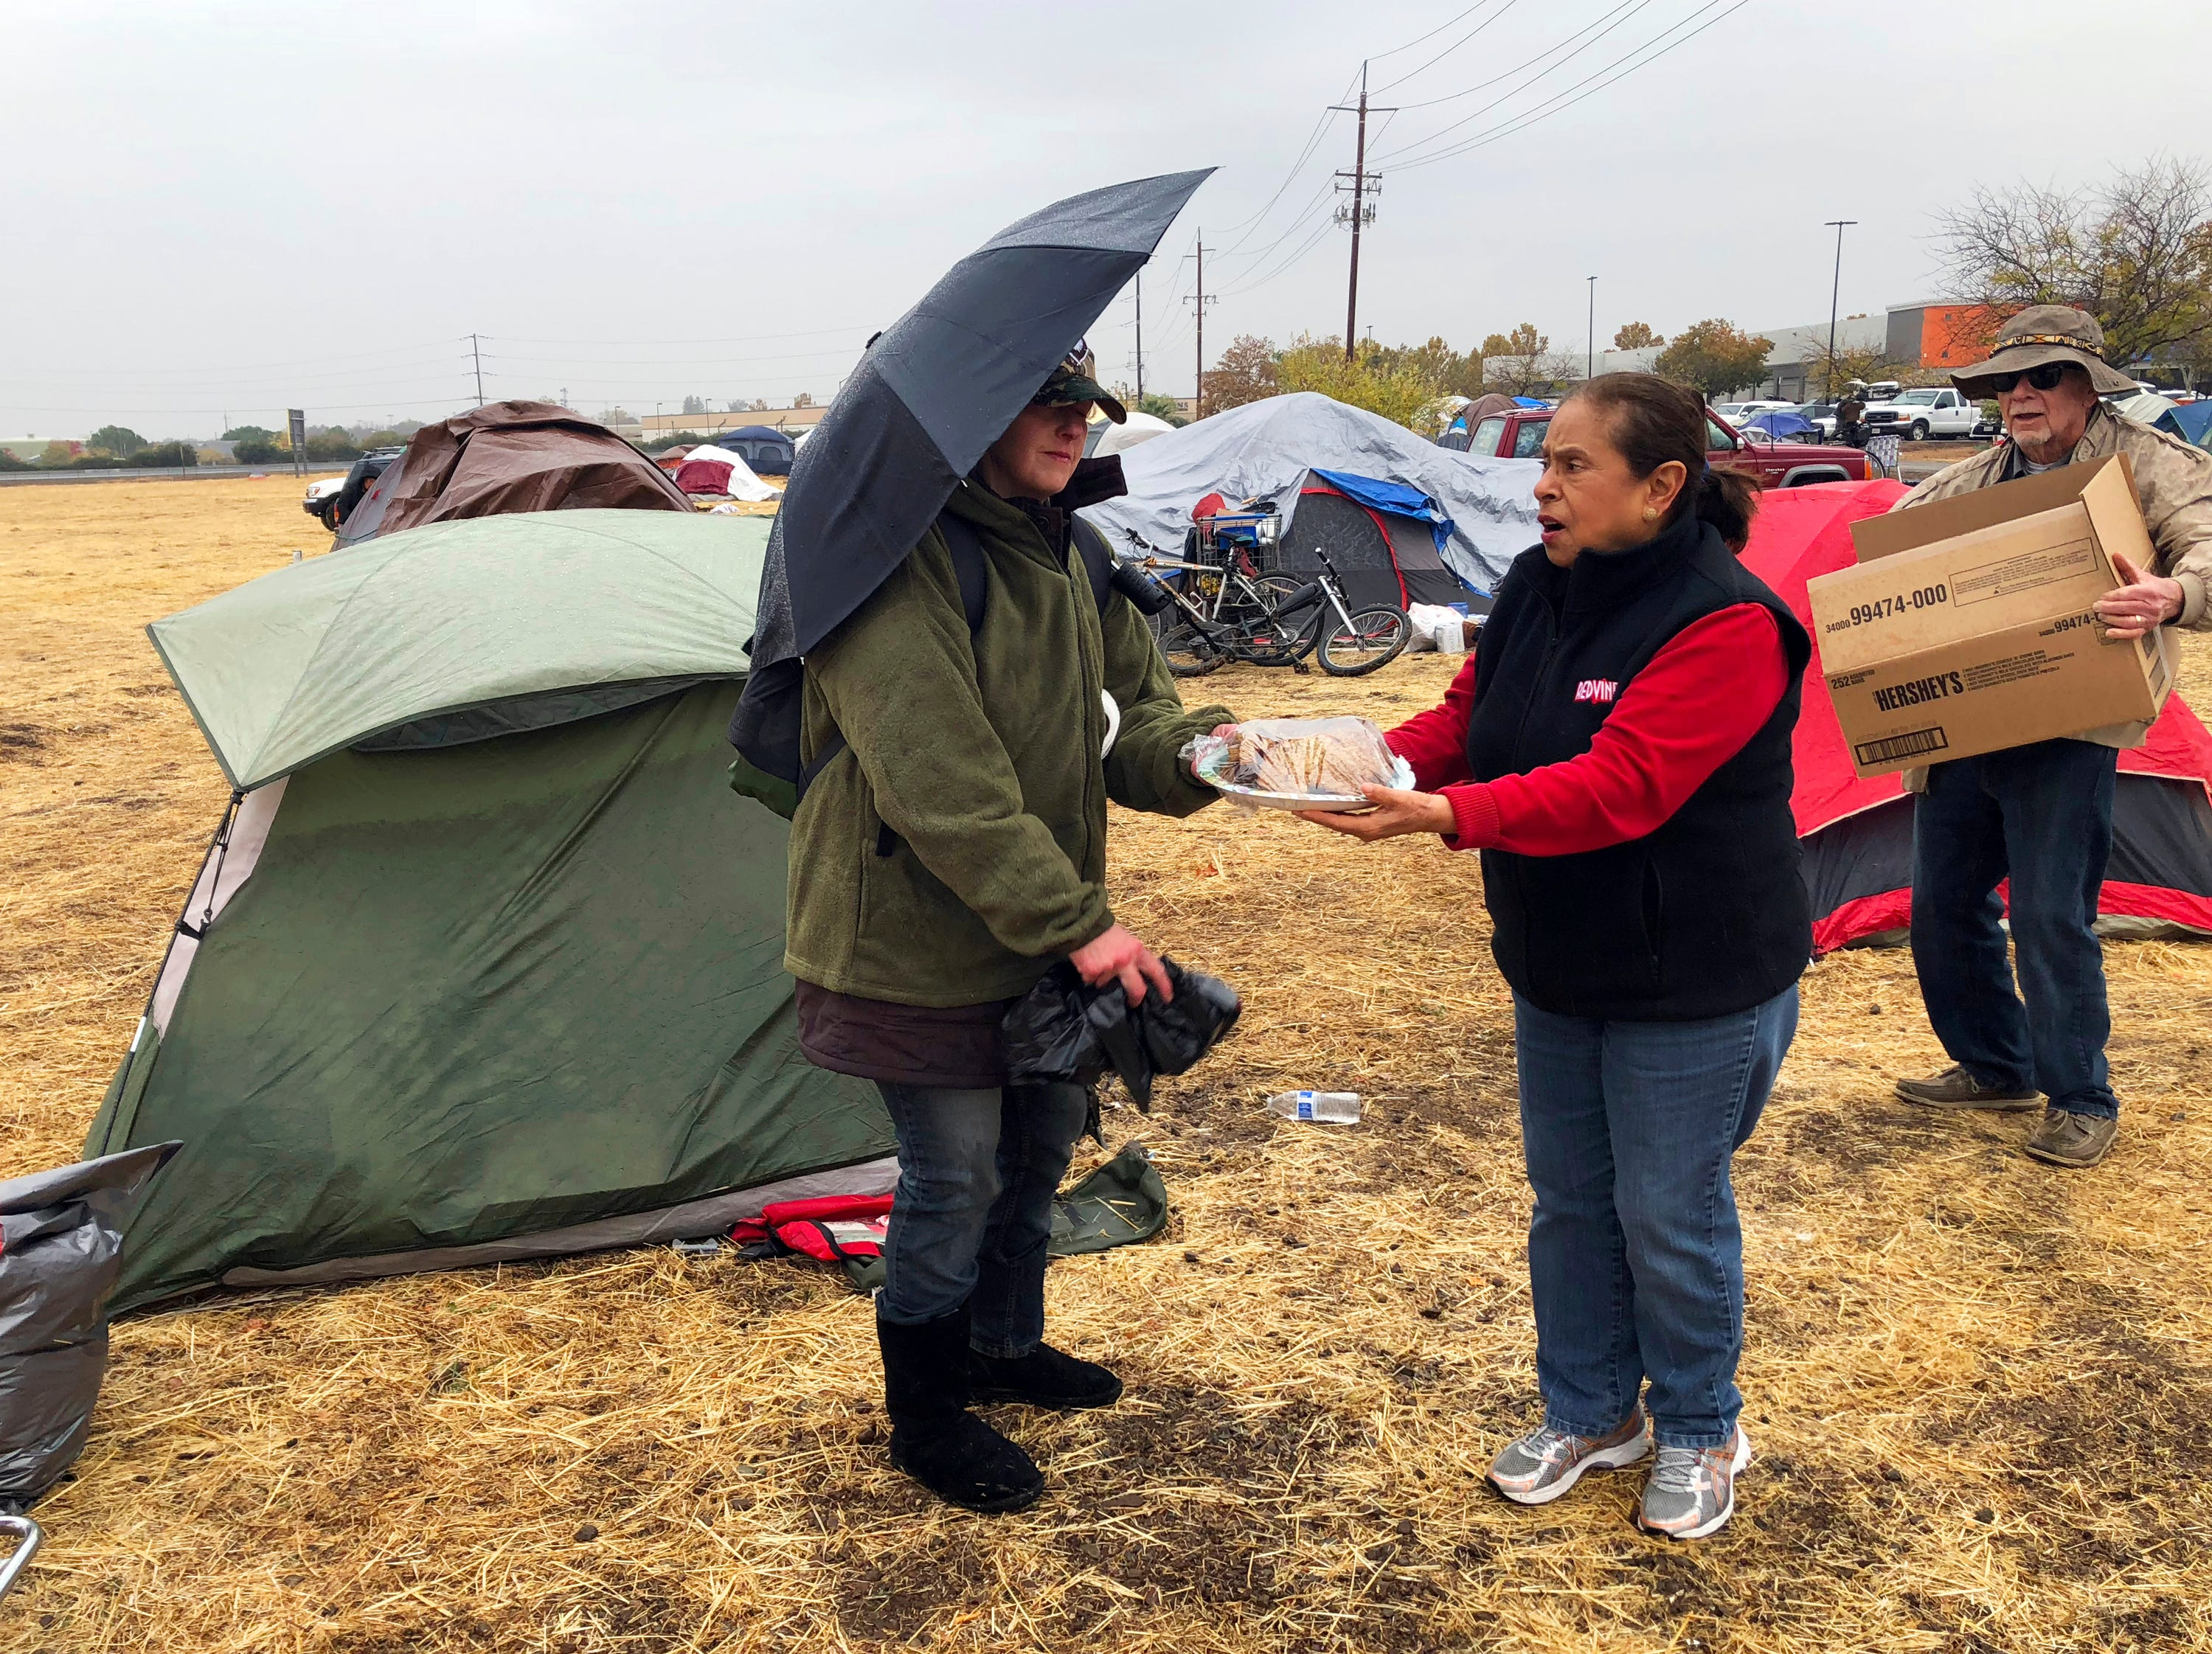 Amy Sheppard accepts banana bread from Margarita and William Bradbury as she packs up items outside her tent in a Walmart parking lot in Chico, Calif., that's been a makeshift campground for people displaced by wildfire, Wednesday morning, Nov. 21, 2018. Sheppard lost her home in Magalia to the Camp fire. She was staying in the tent for four days with her sister and 1-year-old niece. They are moving to a motel because of rain that began Wednesday.